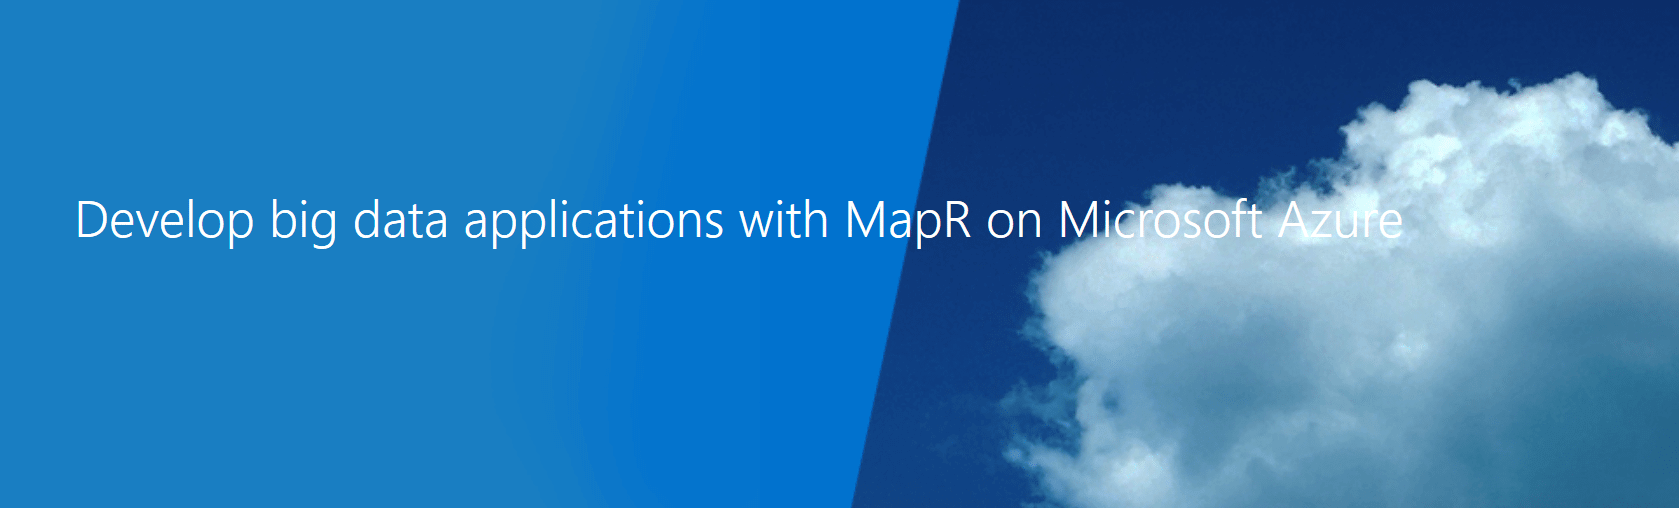 Develop big data applications with MapR on Azure